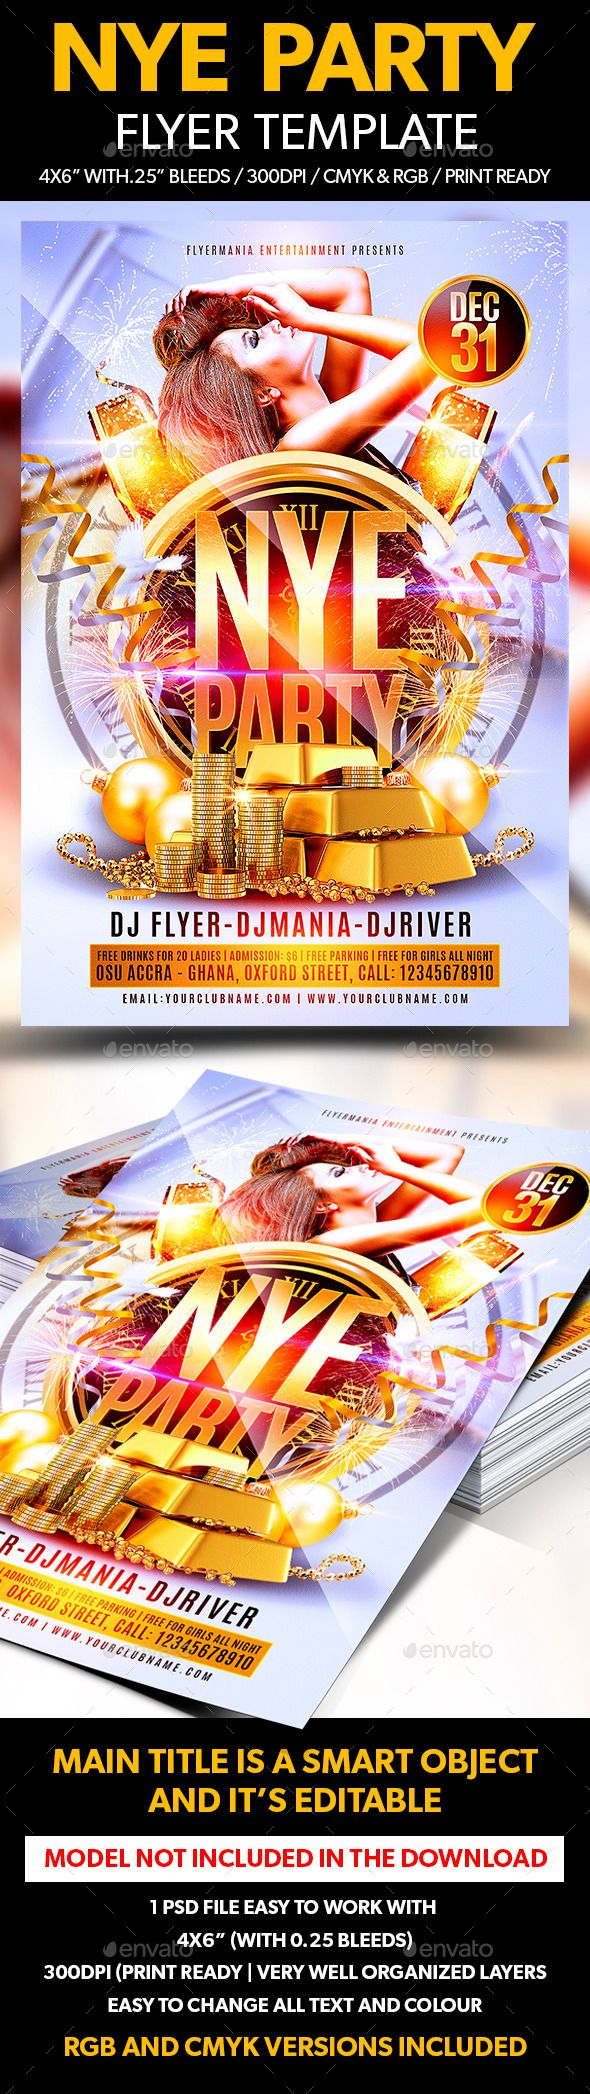 100 best New Year Party Flyer Templates images on Pinterest ...